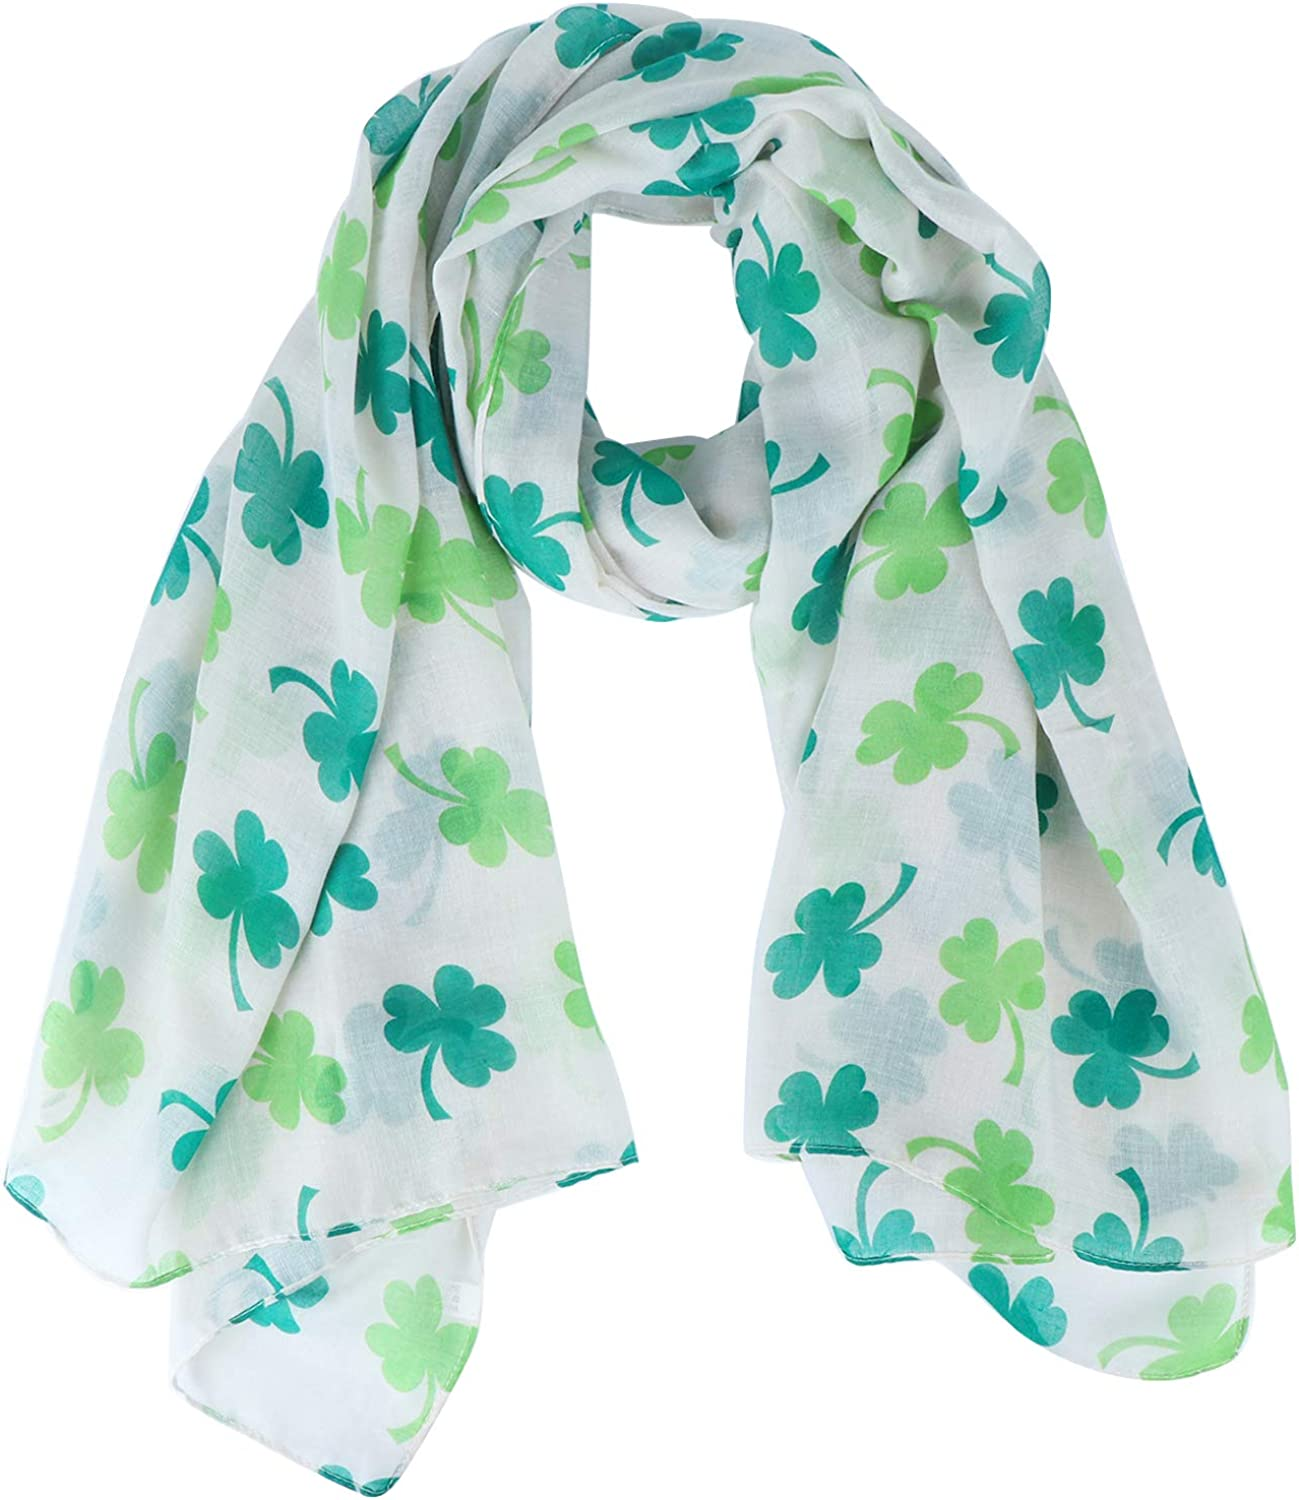 St. Patrick's Day Printed Scarf Irish Clover Scarf Woman Shamrock Scarf Shawl Wrap for Holiday Outfits Accessories